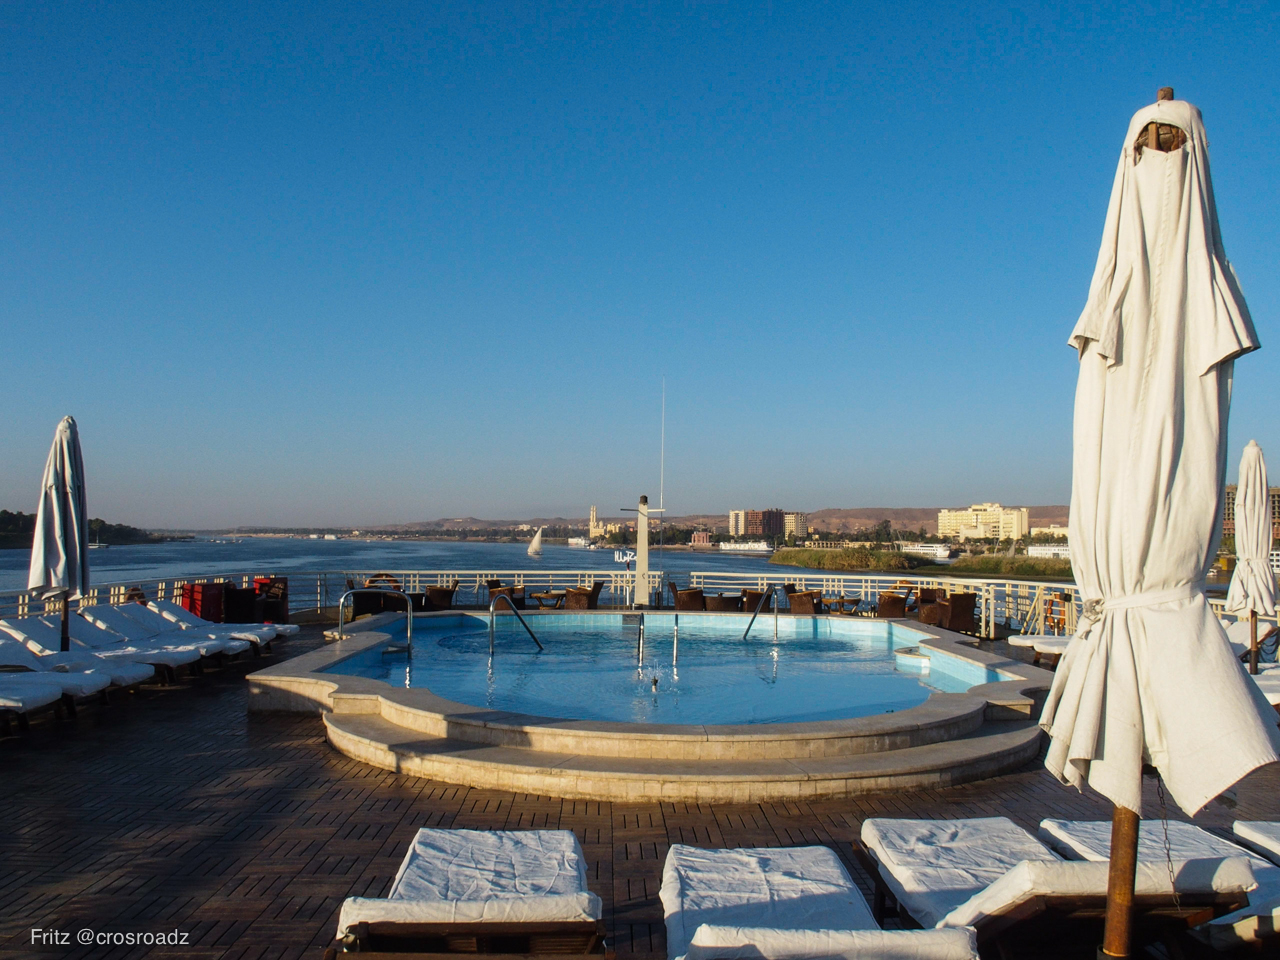 Ms Royal Viking 5 Stars Nile Cruise Ship You Will Find